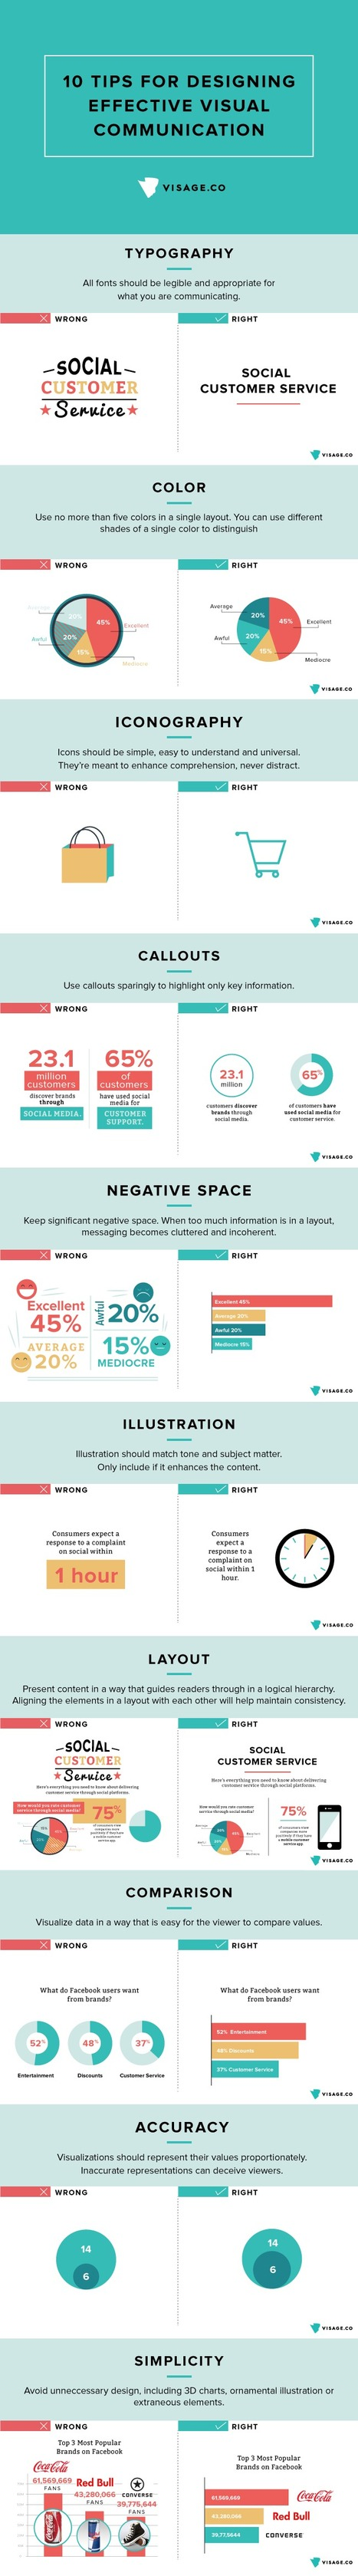 5 Tips to Get the Best Out of Your Graphic Designer | Writing for the web & content marketing | Scoop.it